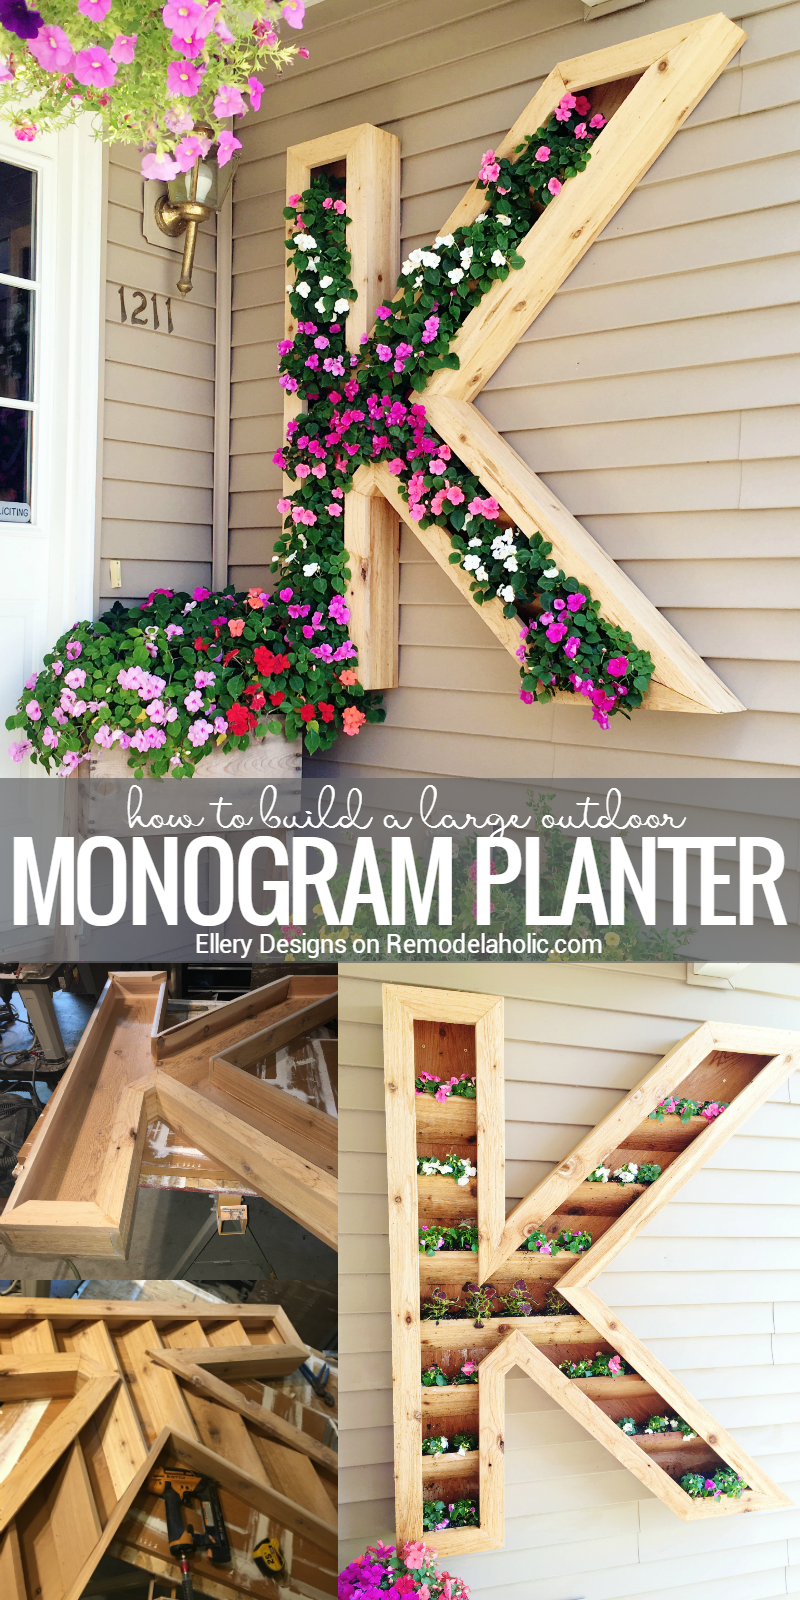 Remodelaholic diy monogram planter tutorial for Pinterest diy decor ideas